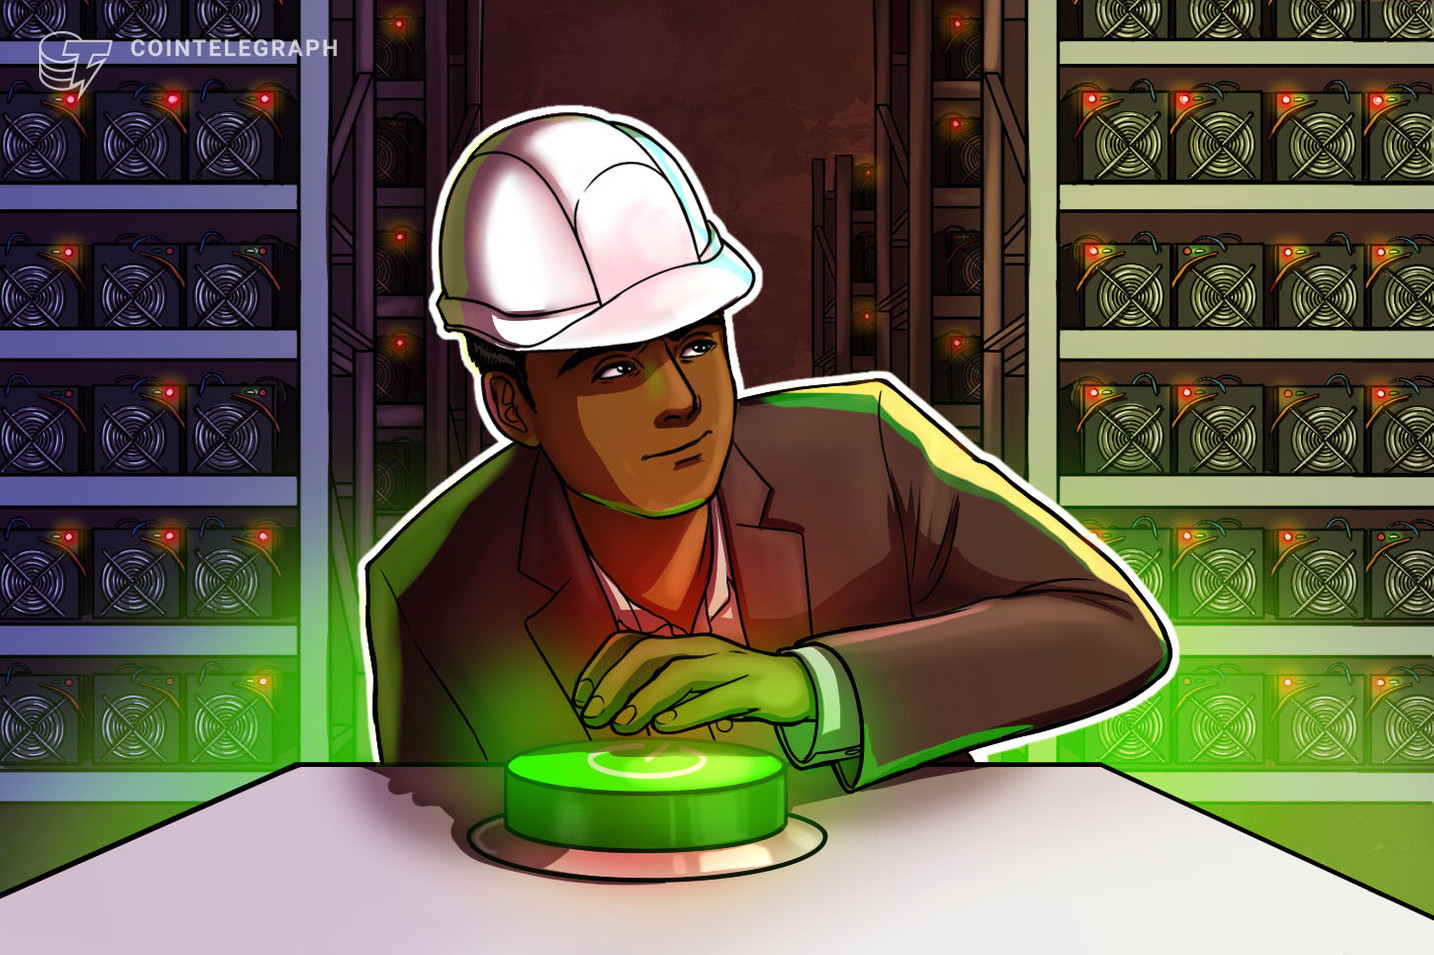 Iranian Authorities Greenlight Power Plants Mining Bitcoin